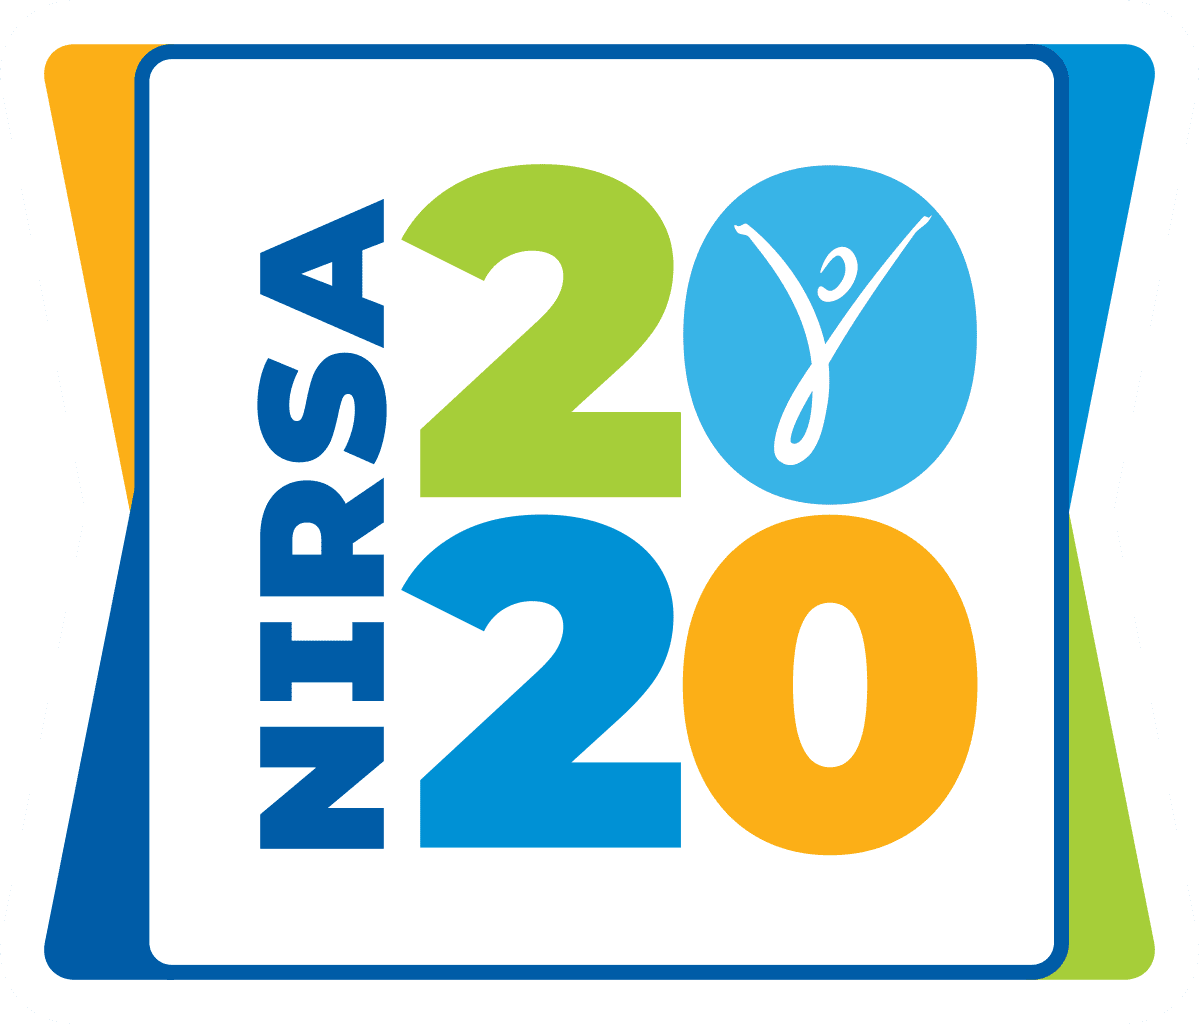 NIRSA 2020 71st Annual Conference & Campus Rec and Wellness Expo